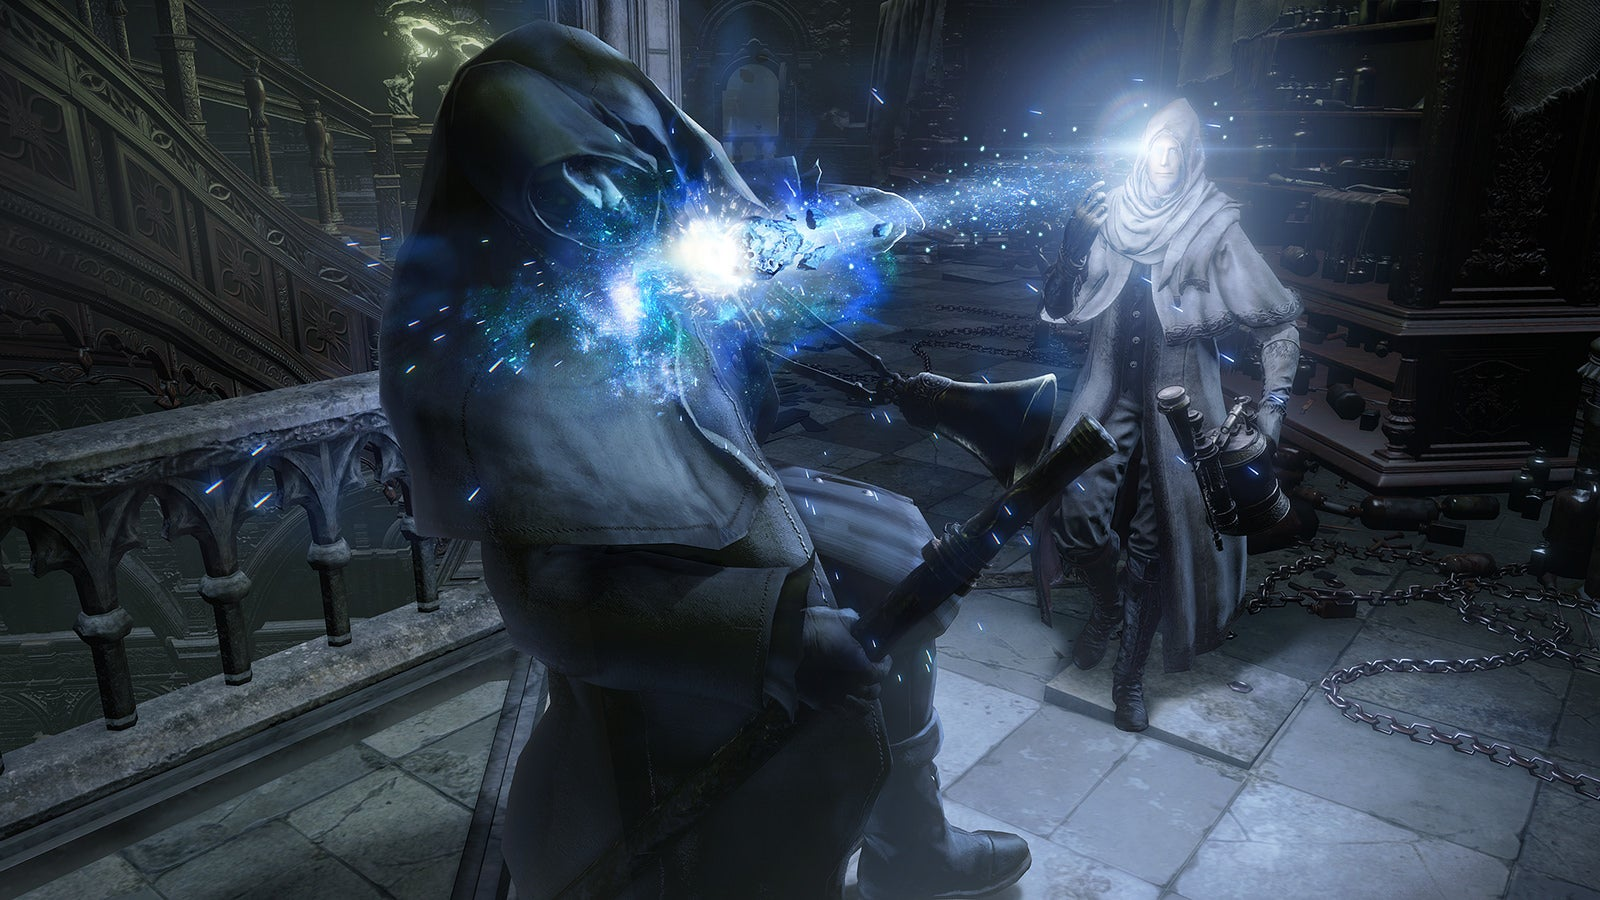 Bloodborne Servers Offline For Several Days Due To Mysterious 'Emergency Maintenance'